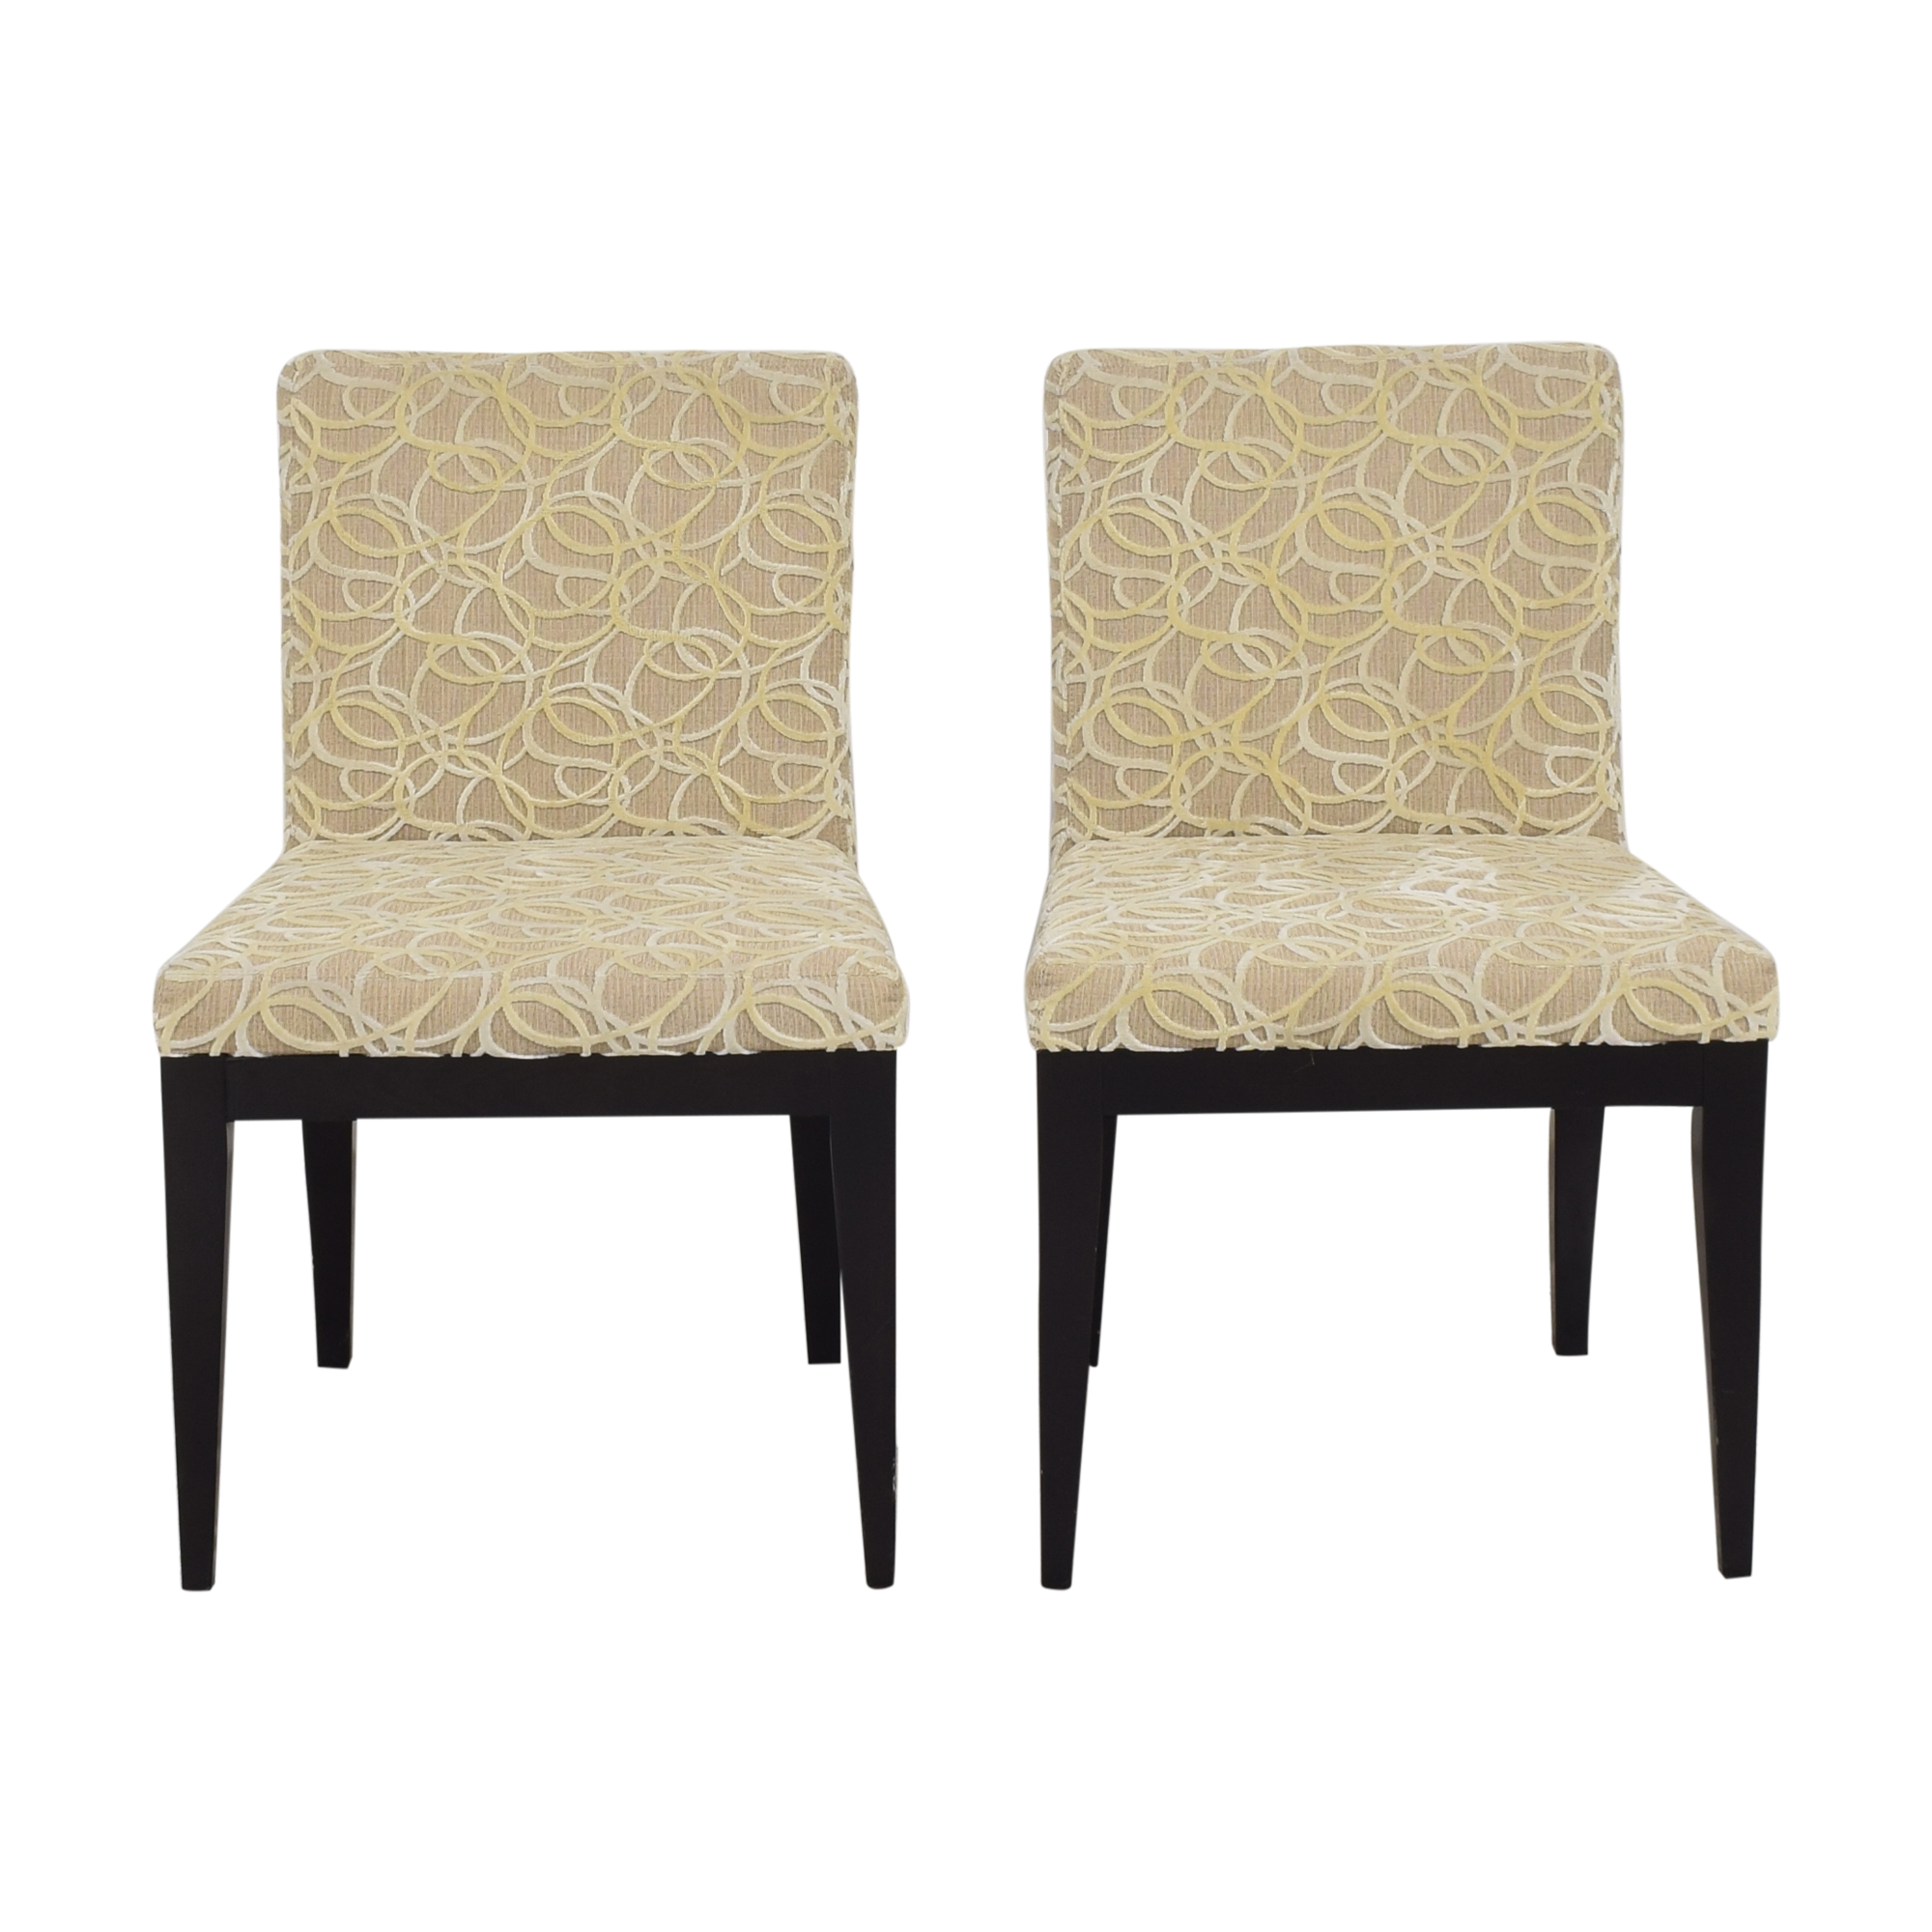 Bolier & Company Bolier & Company Upholstered Dining Chairs